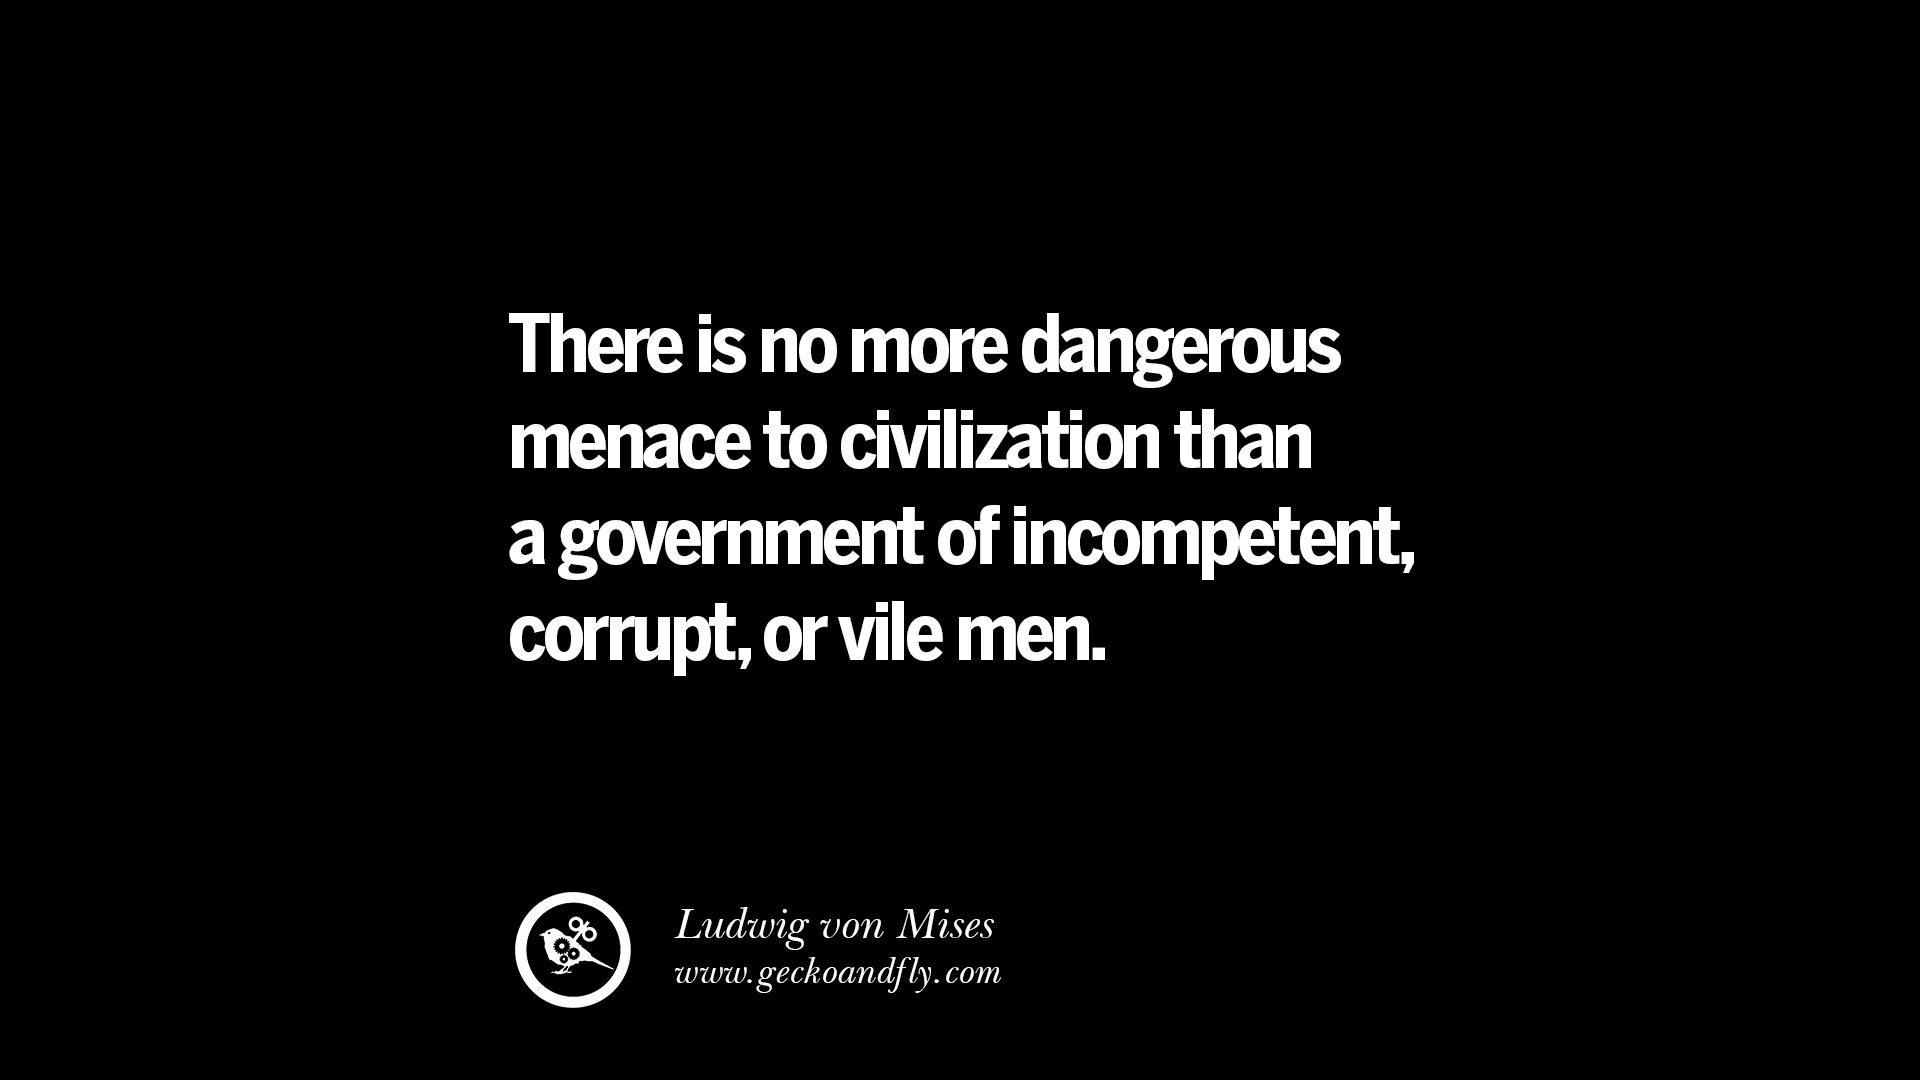 Quotes On Power 30 Anti Corruption Quotes For Politicians On Greed And Power